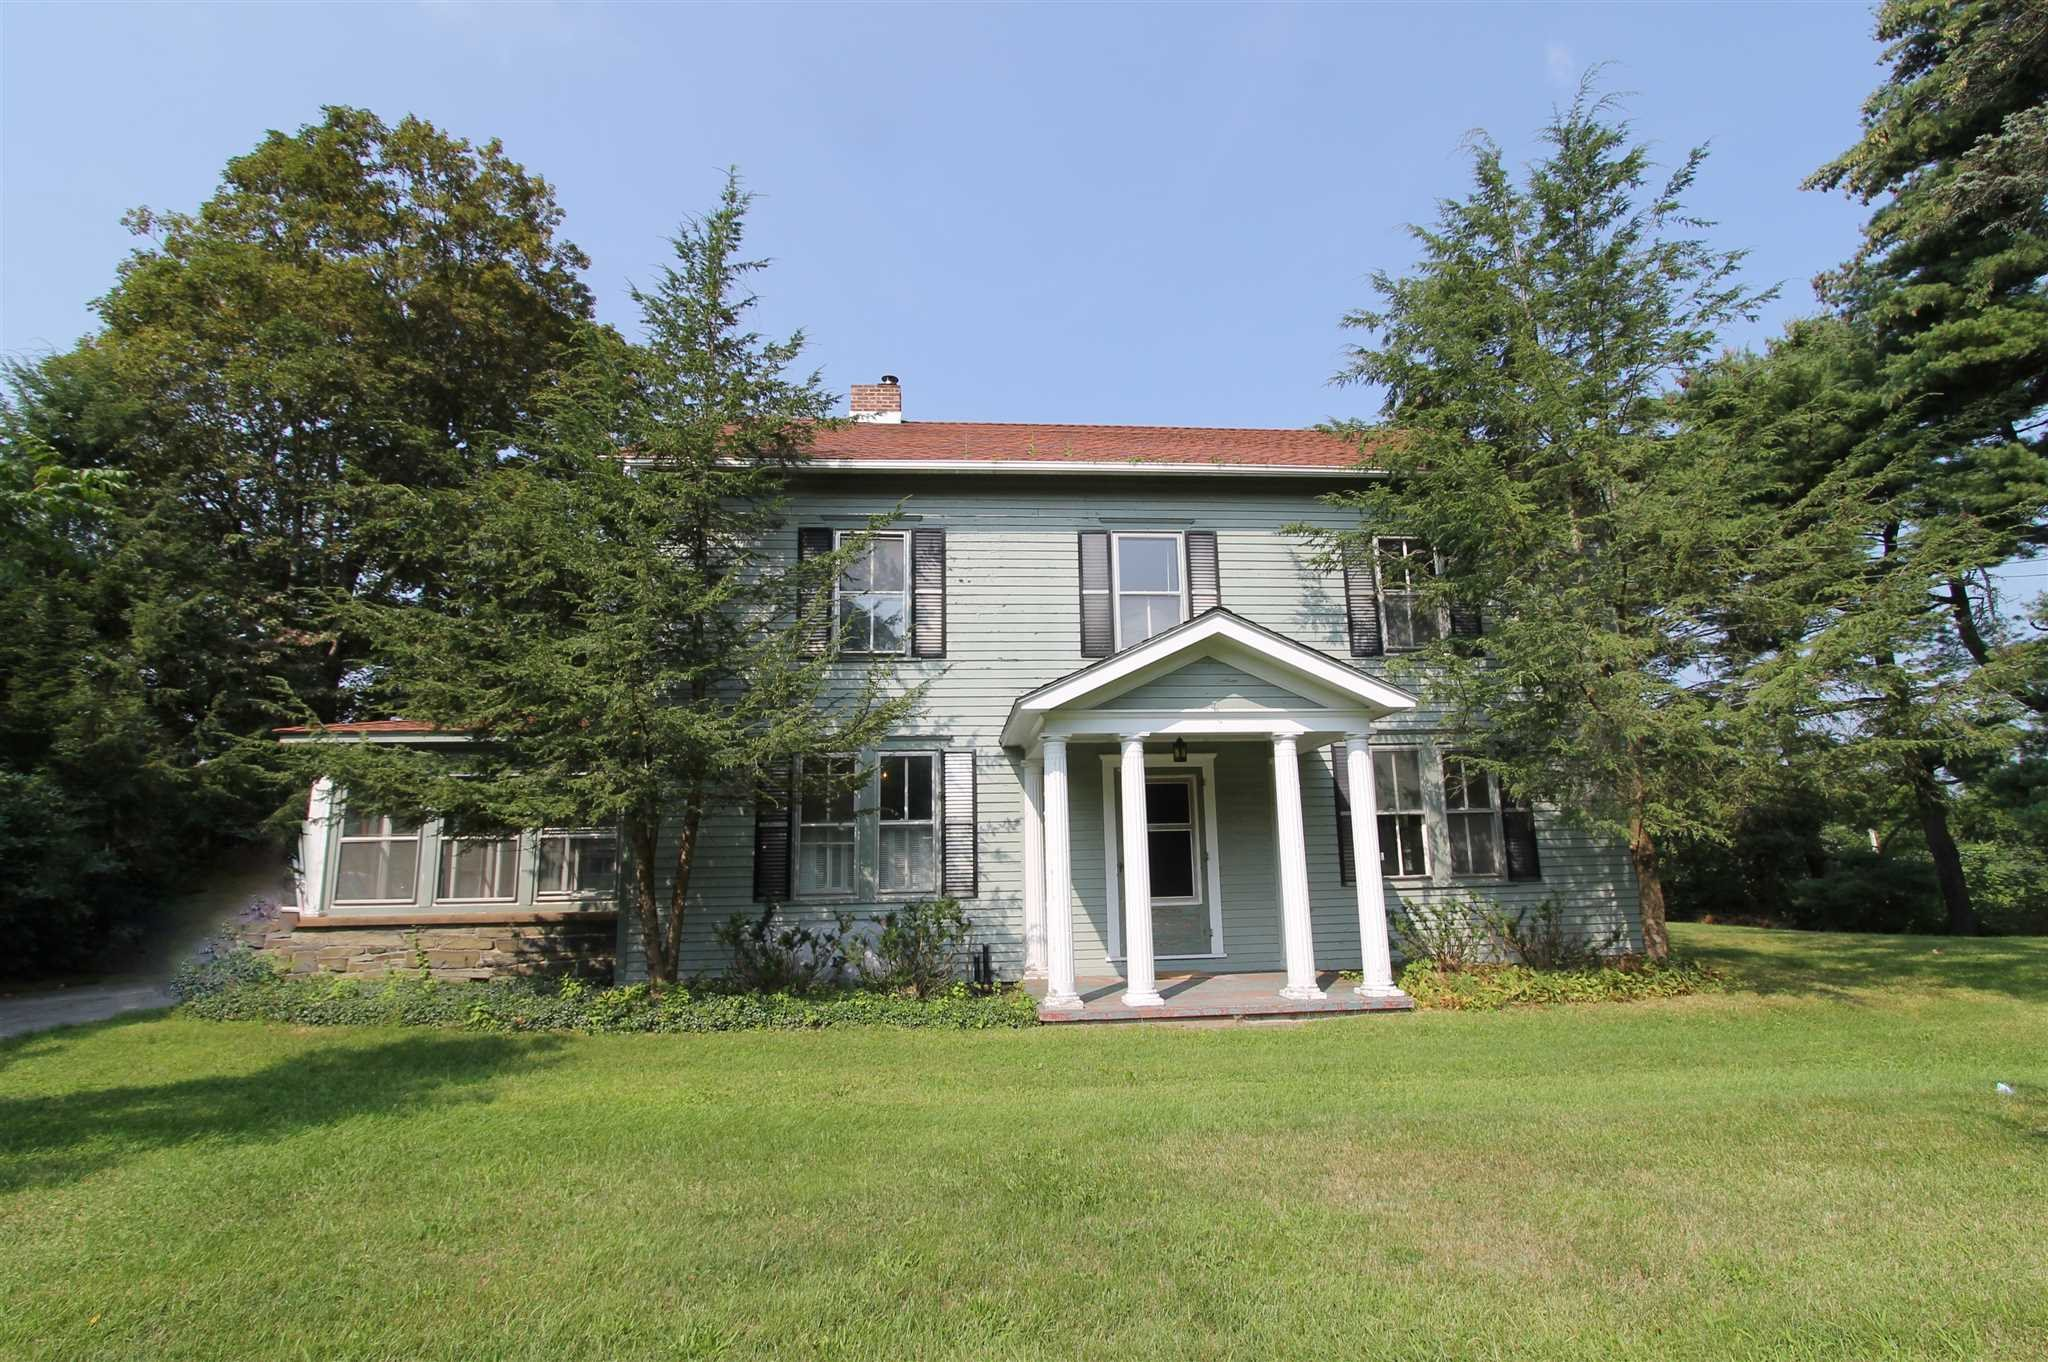 Single Family Home for Sale at 5861 ROUTE 9 5861 ROUTE 9 Rhinebeck, New York 12572 United States